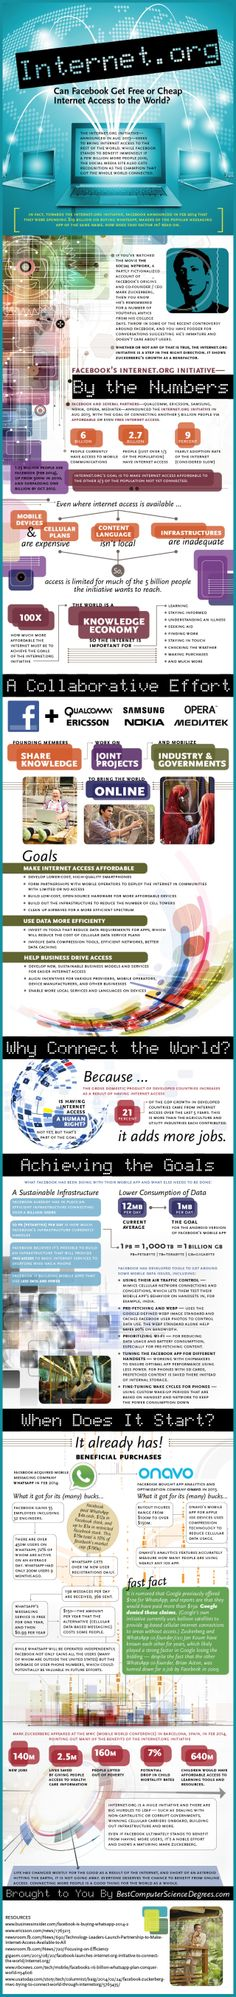 Can Facebook get free or cheap Internet access to the world #infografia #infographic